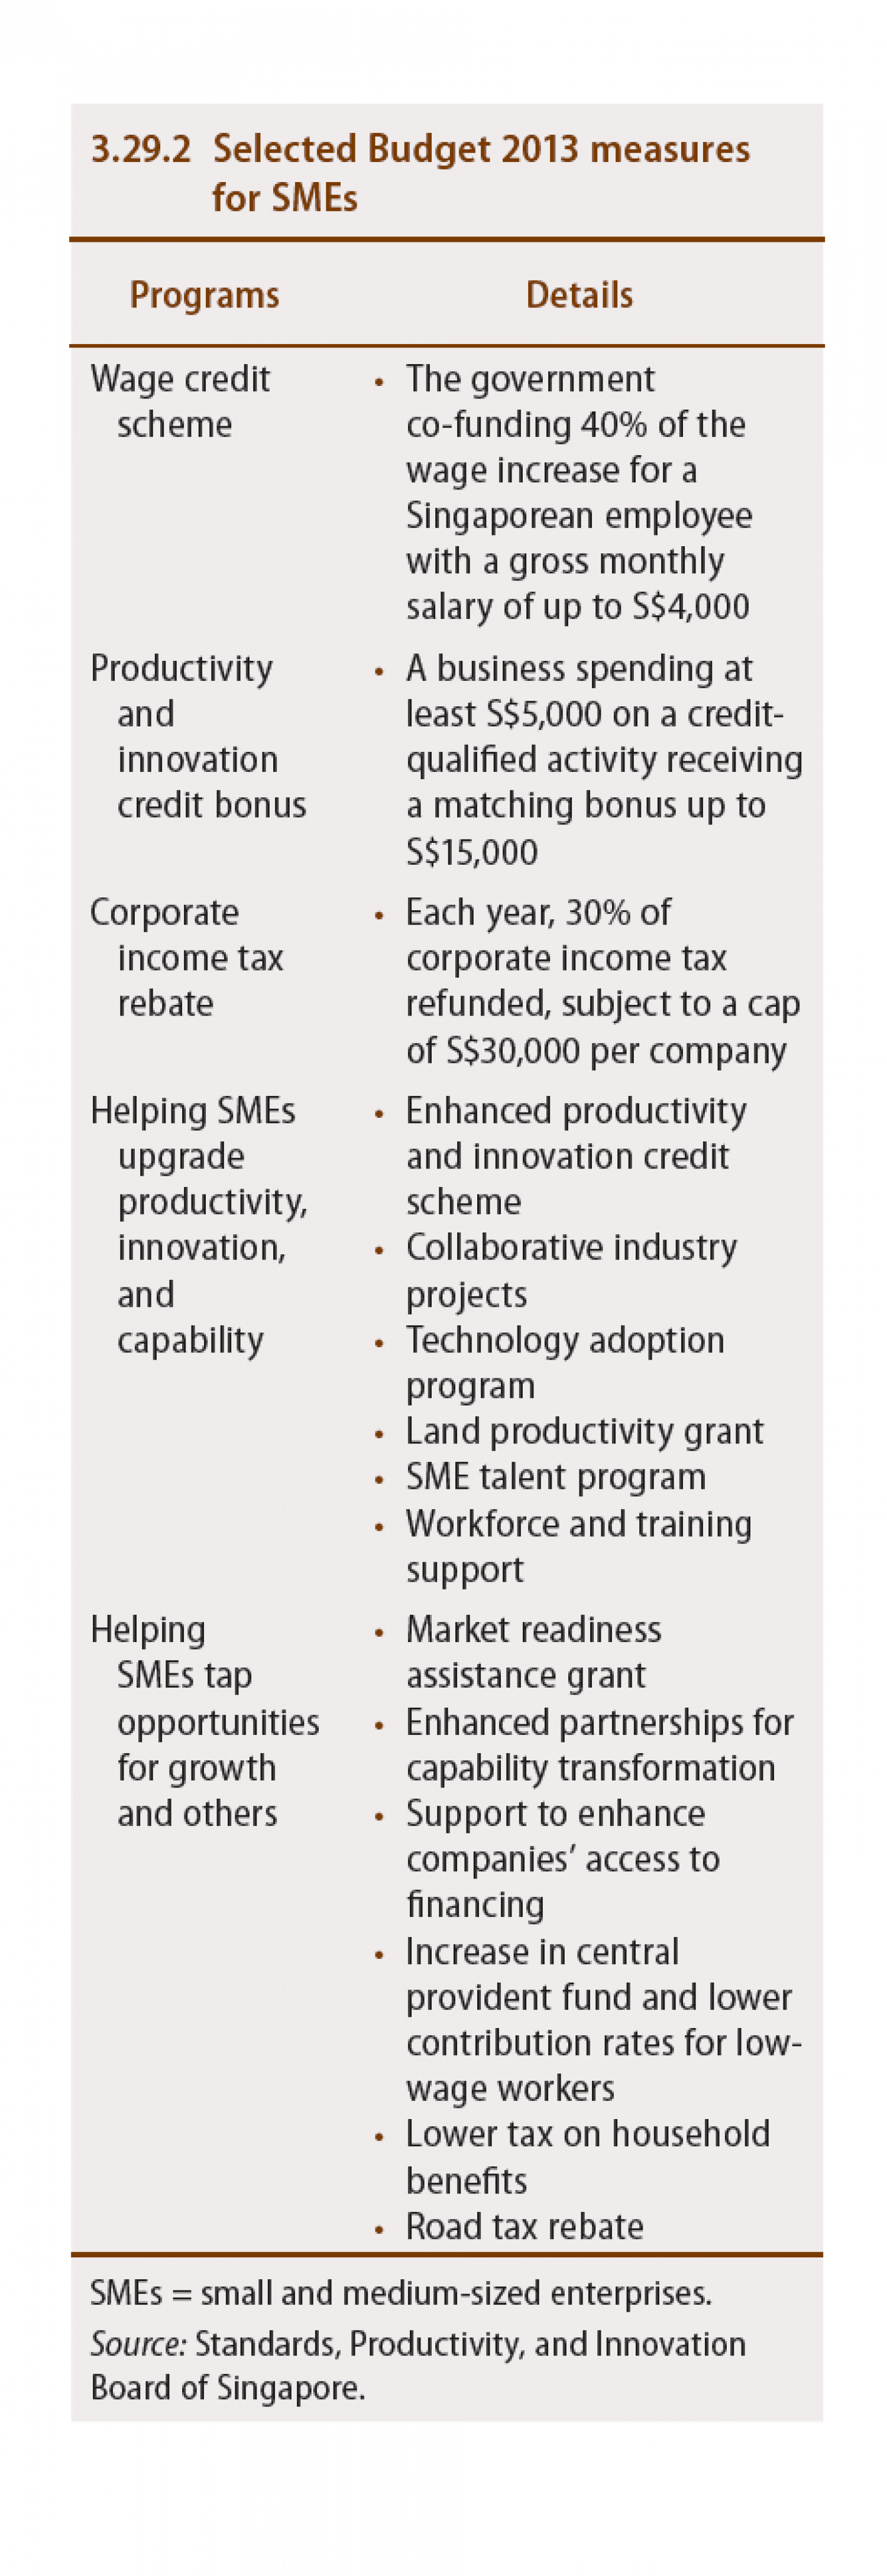 Singapore : Selected Budget 2013 measures for SMEs Infographic